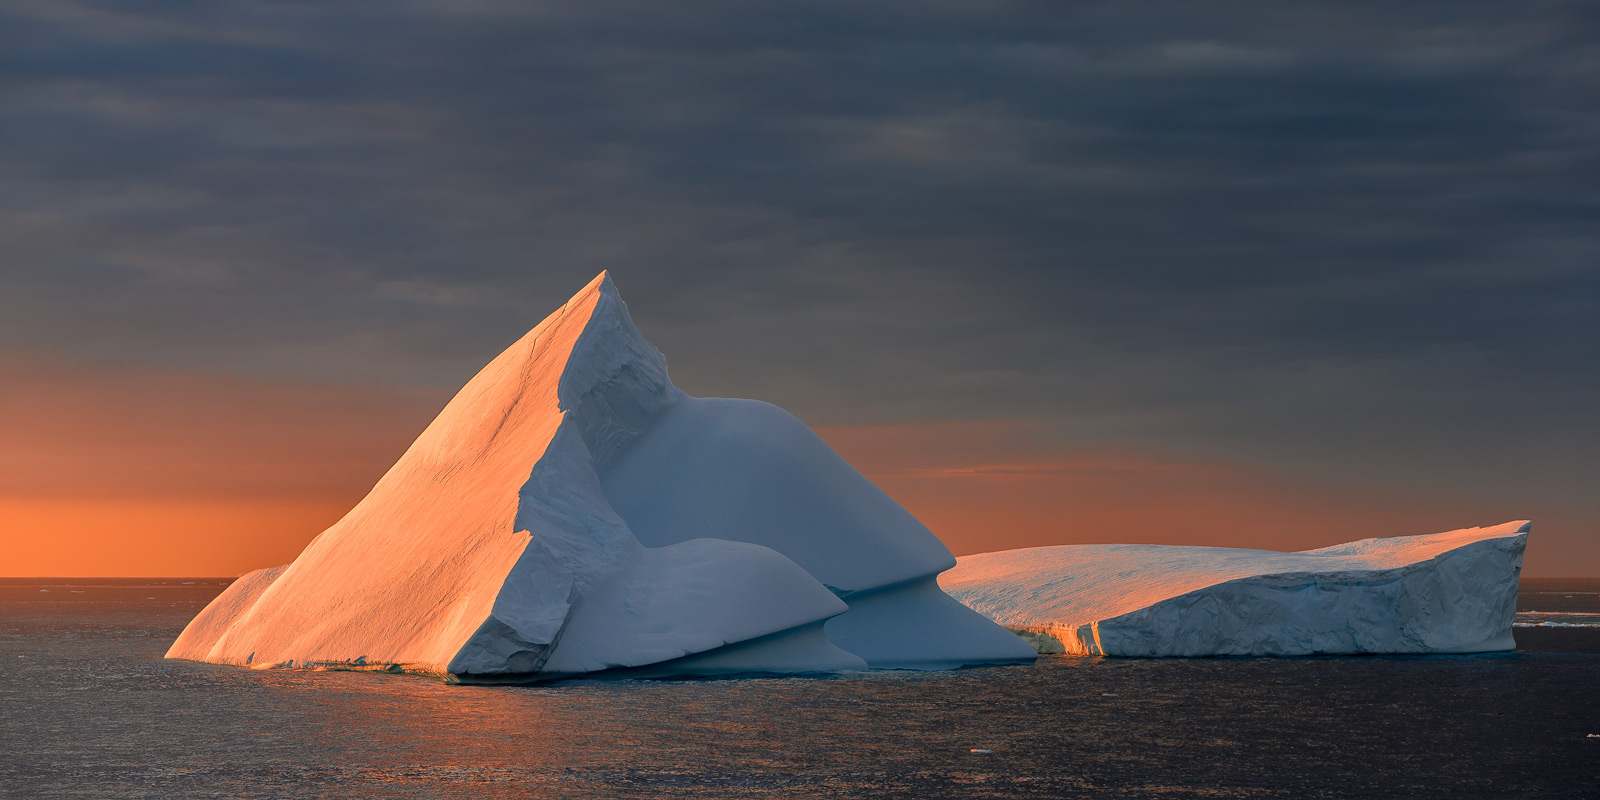 A Limited Edition, Fine Art photograph in Antarctica of a pyramid shaped iceberg during sunset resulting in shades of warm, orange...